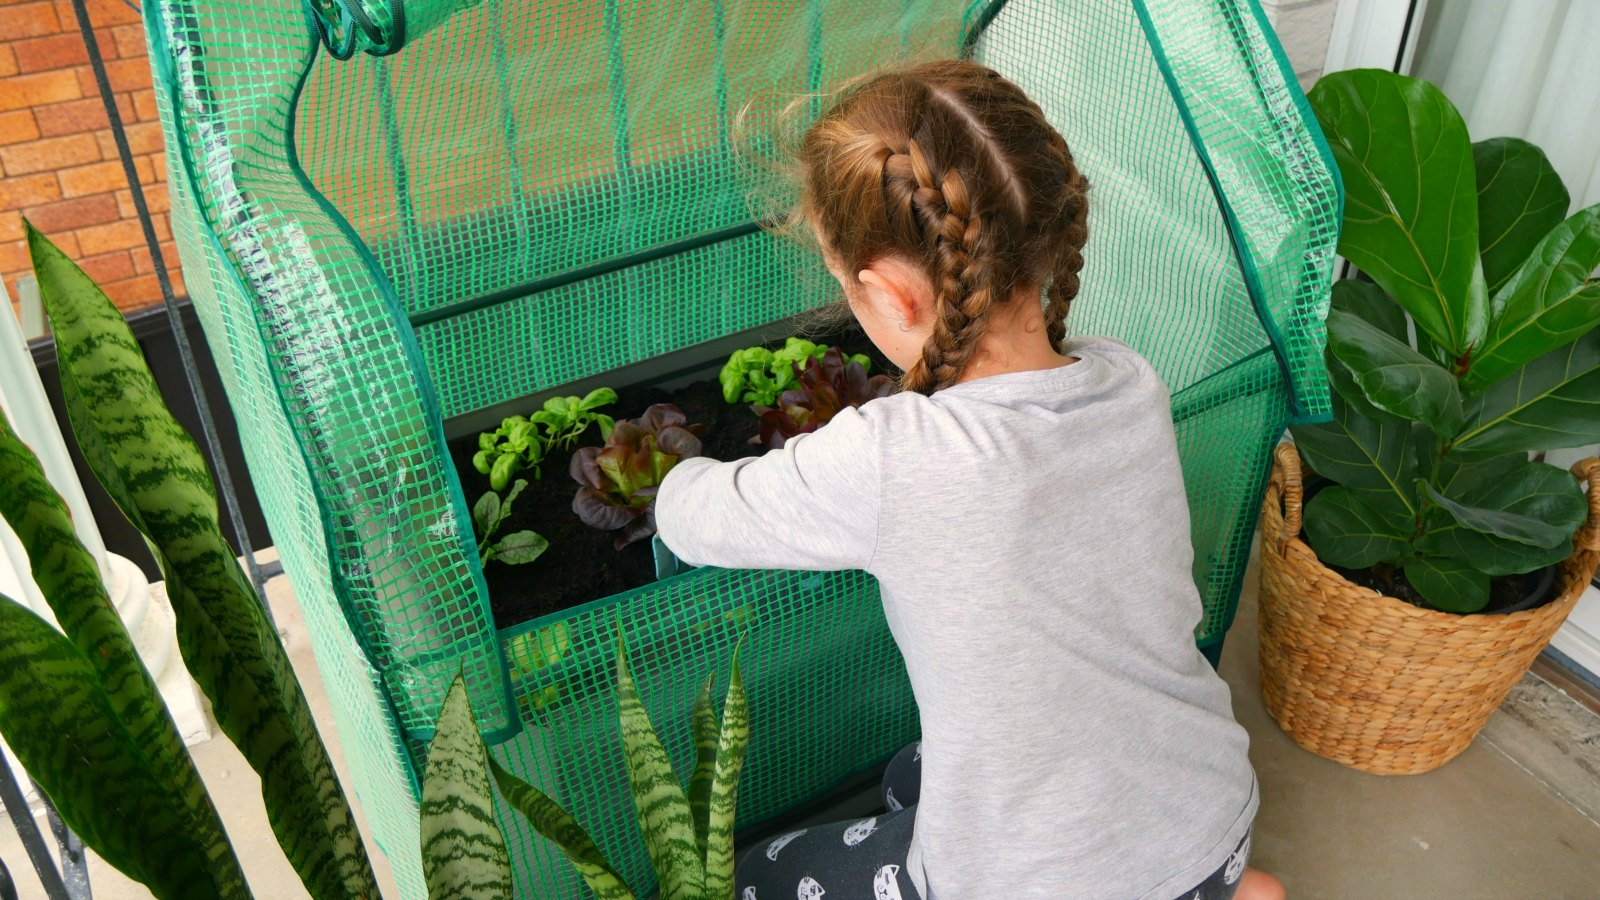 Balcony garden: The perfect first garden for kids